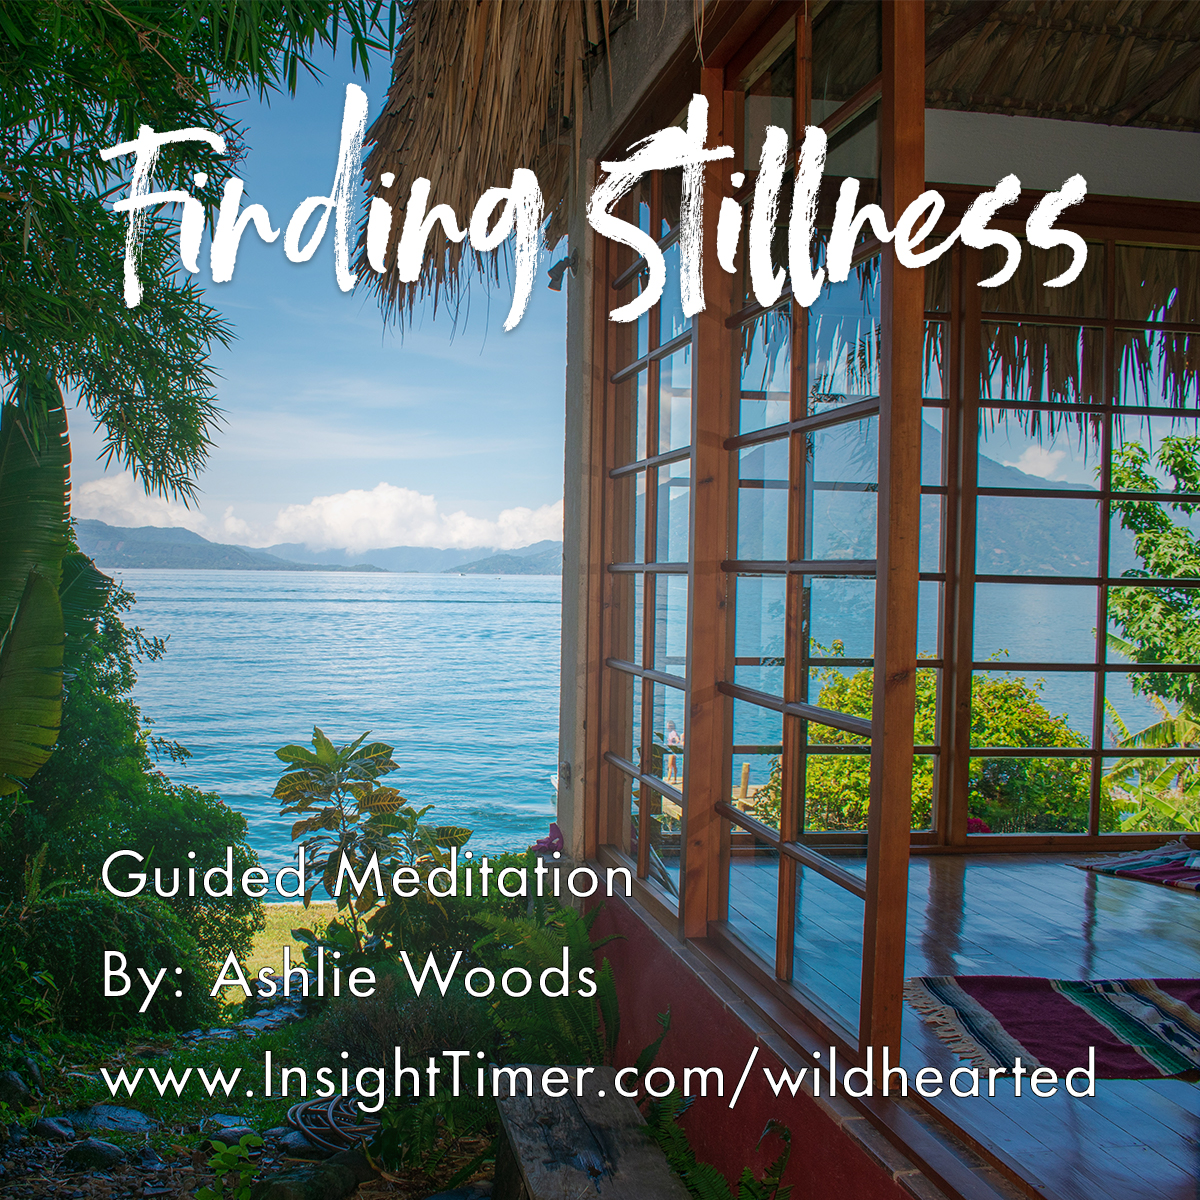 A visualization practice to support you in quieting the movement of the mind and finding the underlying stillness that is always there and available to you. You will finish this restorative practice feeling grounded, centered and at peace.